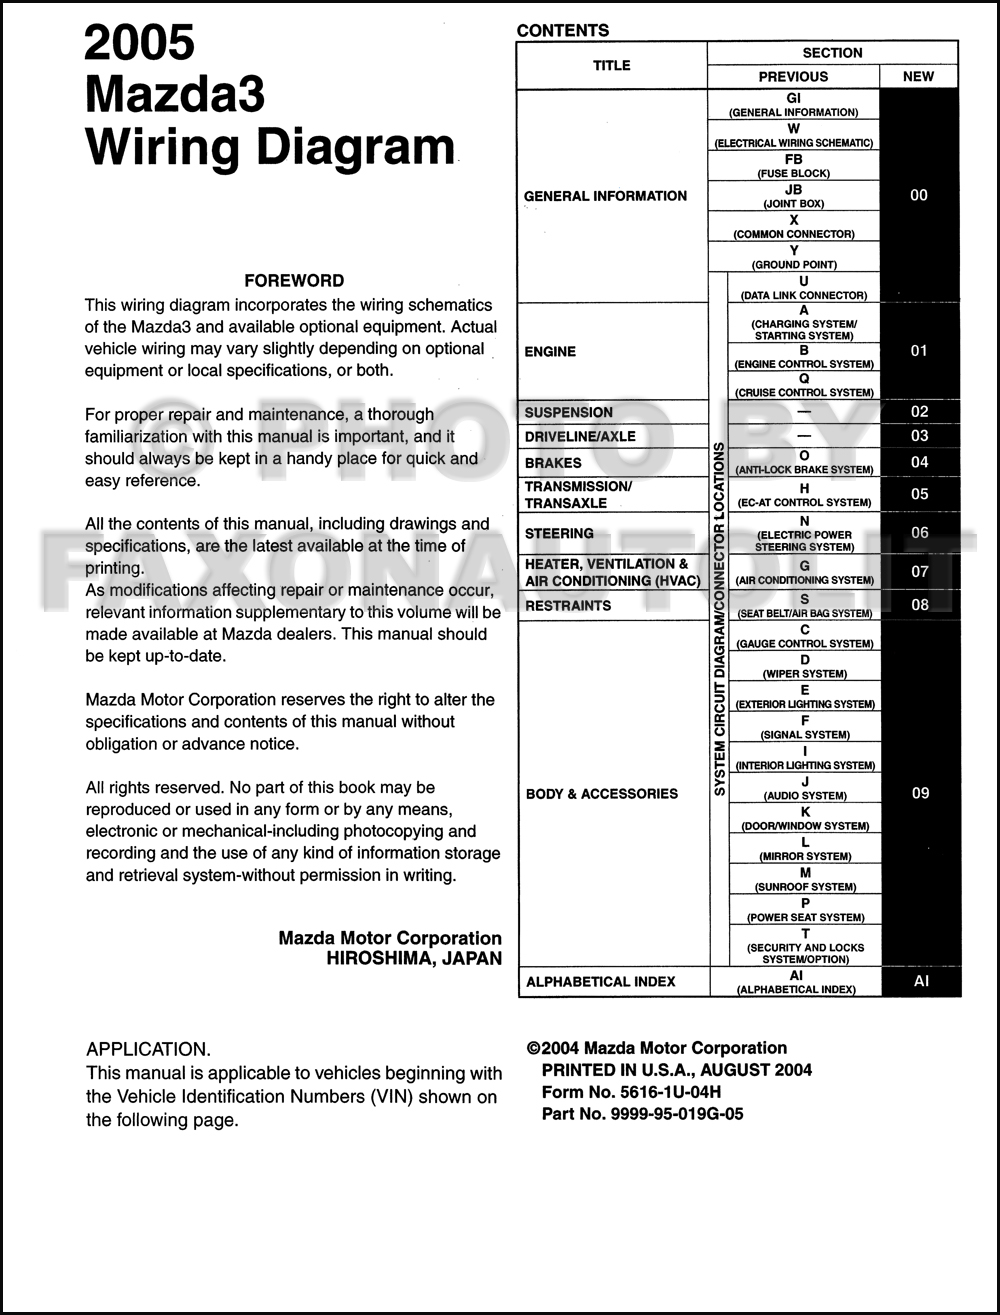 2005 mazda 3 wiring diagram manual original. Black Bedroom Furniture Sets. Home Design Ideas